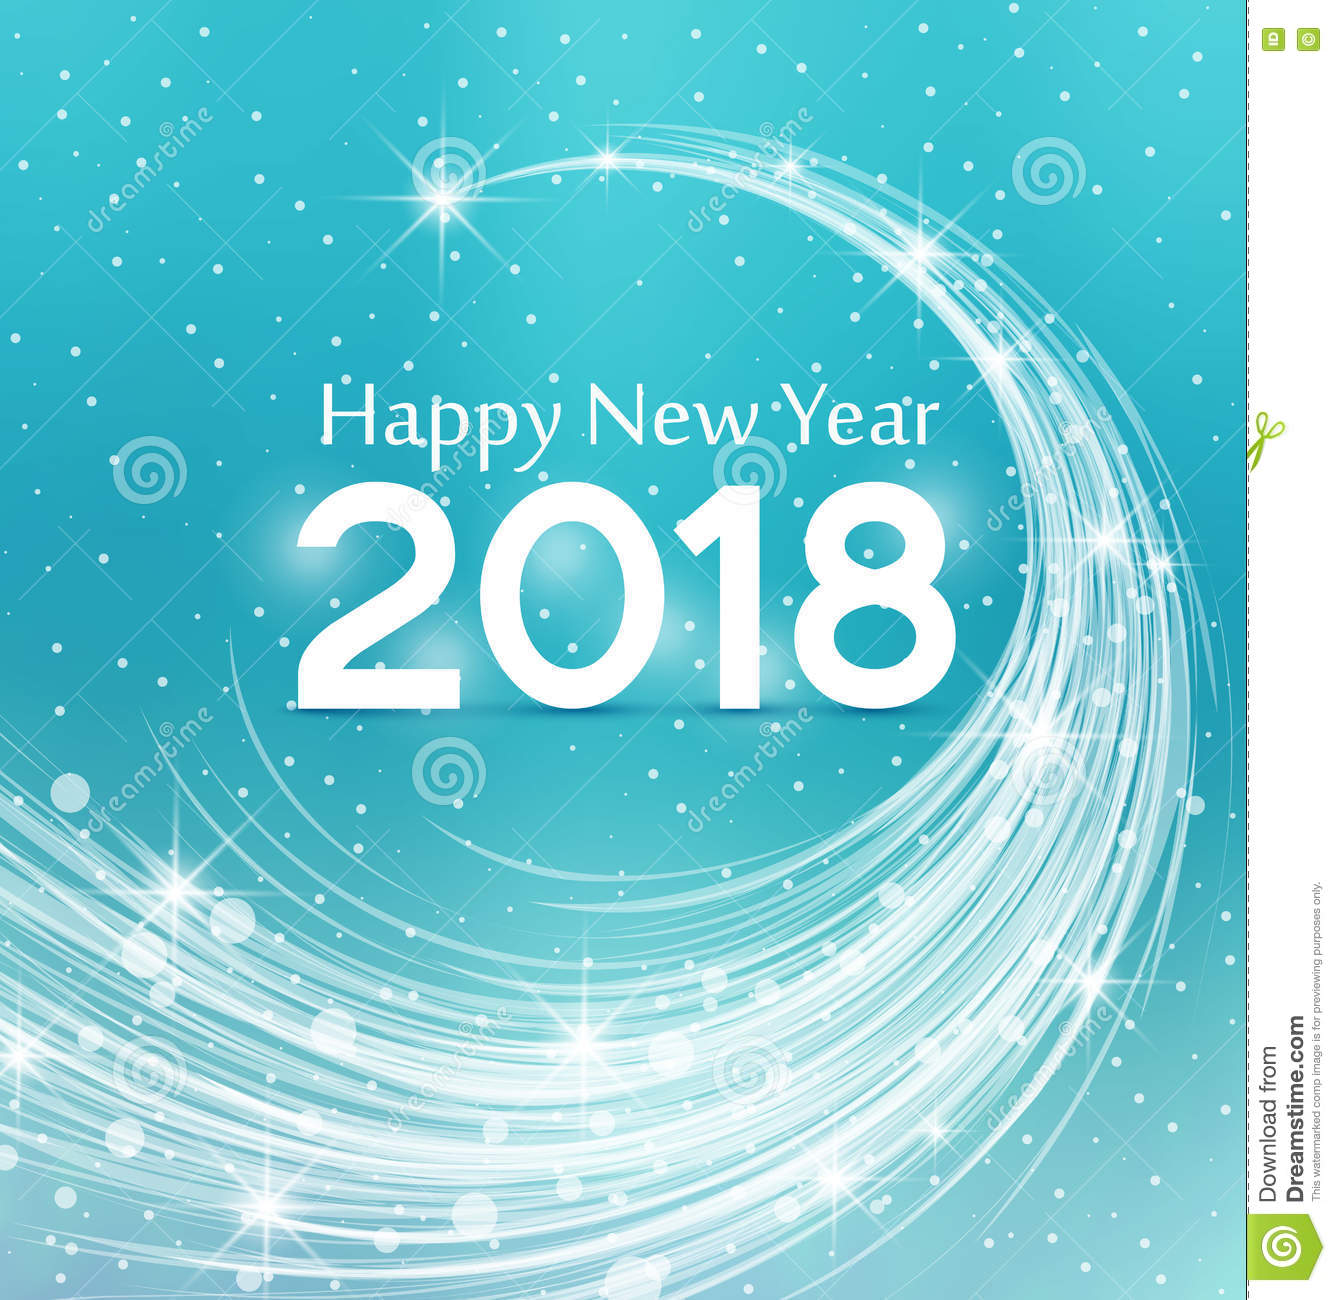 background happy new year 2018